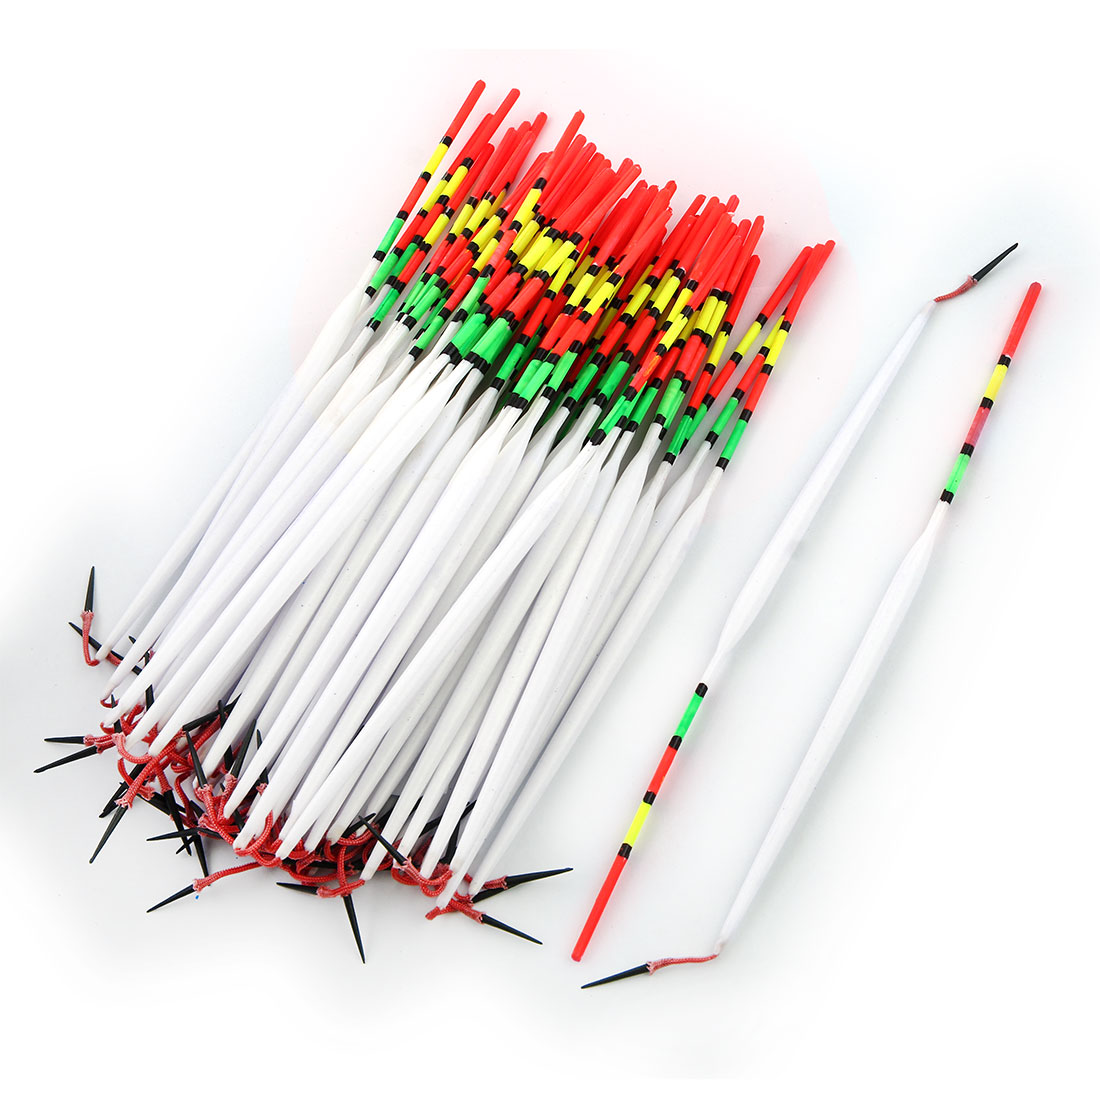 Fisherman Fishing Tackle Tool Drift Tube Floater Bobber 18cm Length 70 Pcs by Unique-Bargains